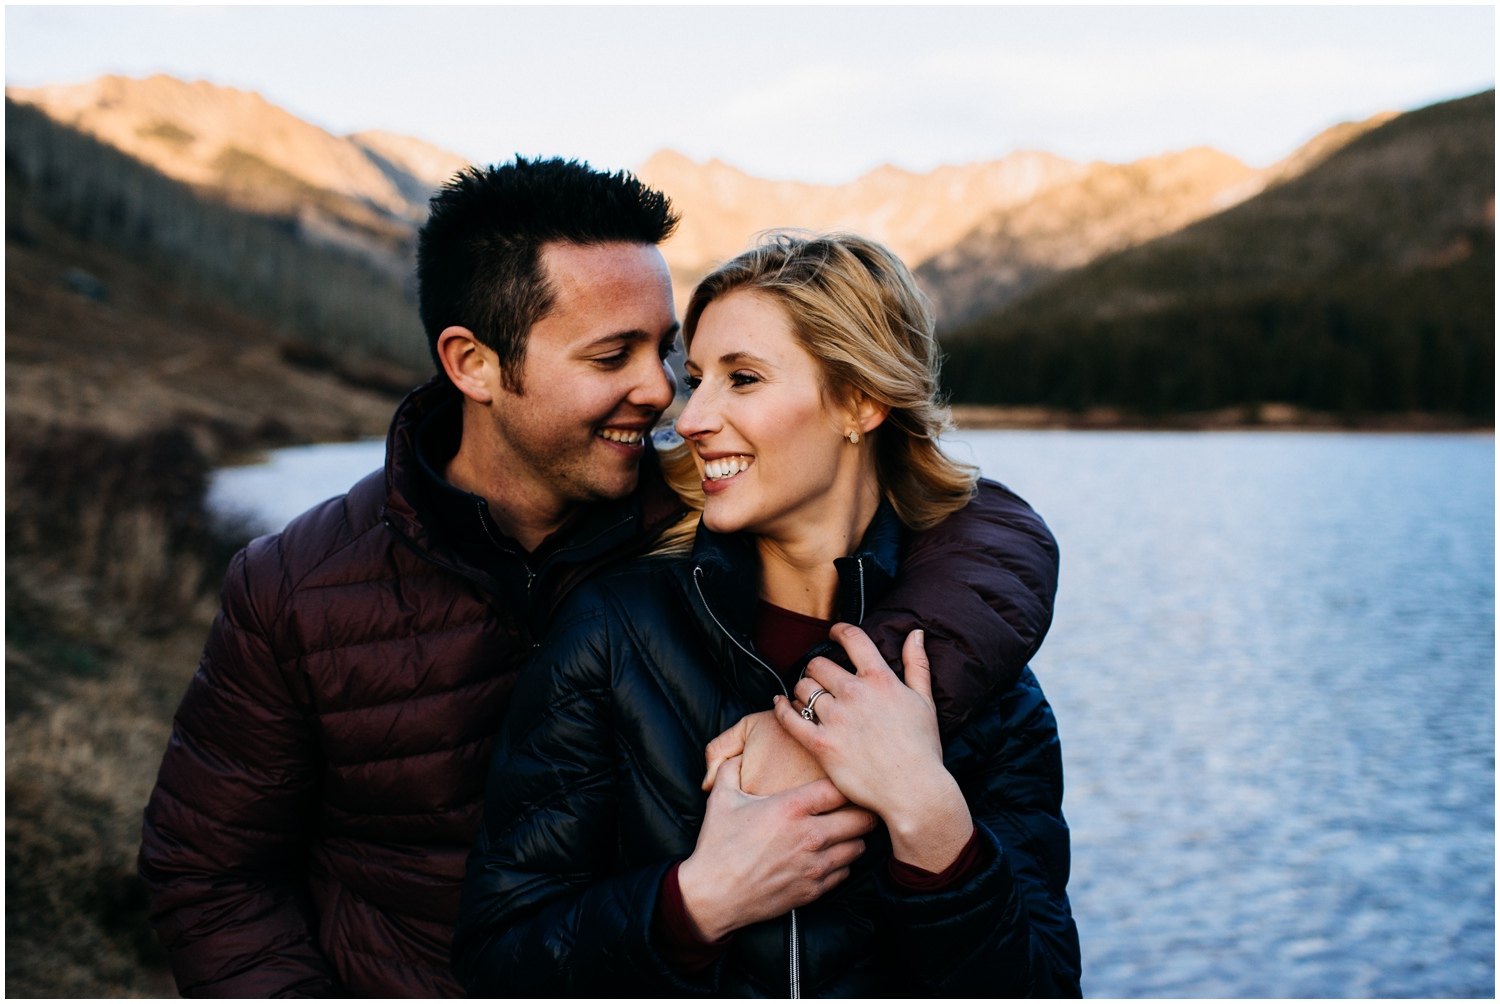 adventure_photo_engagement_session_vail_colorado_taylor_powers__0076.jpg